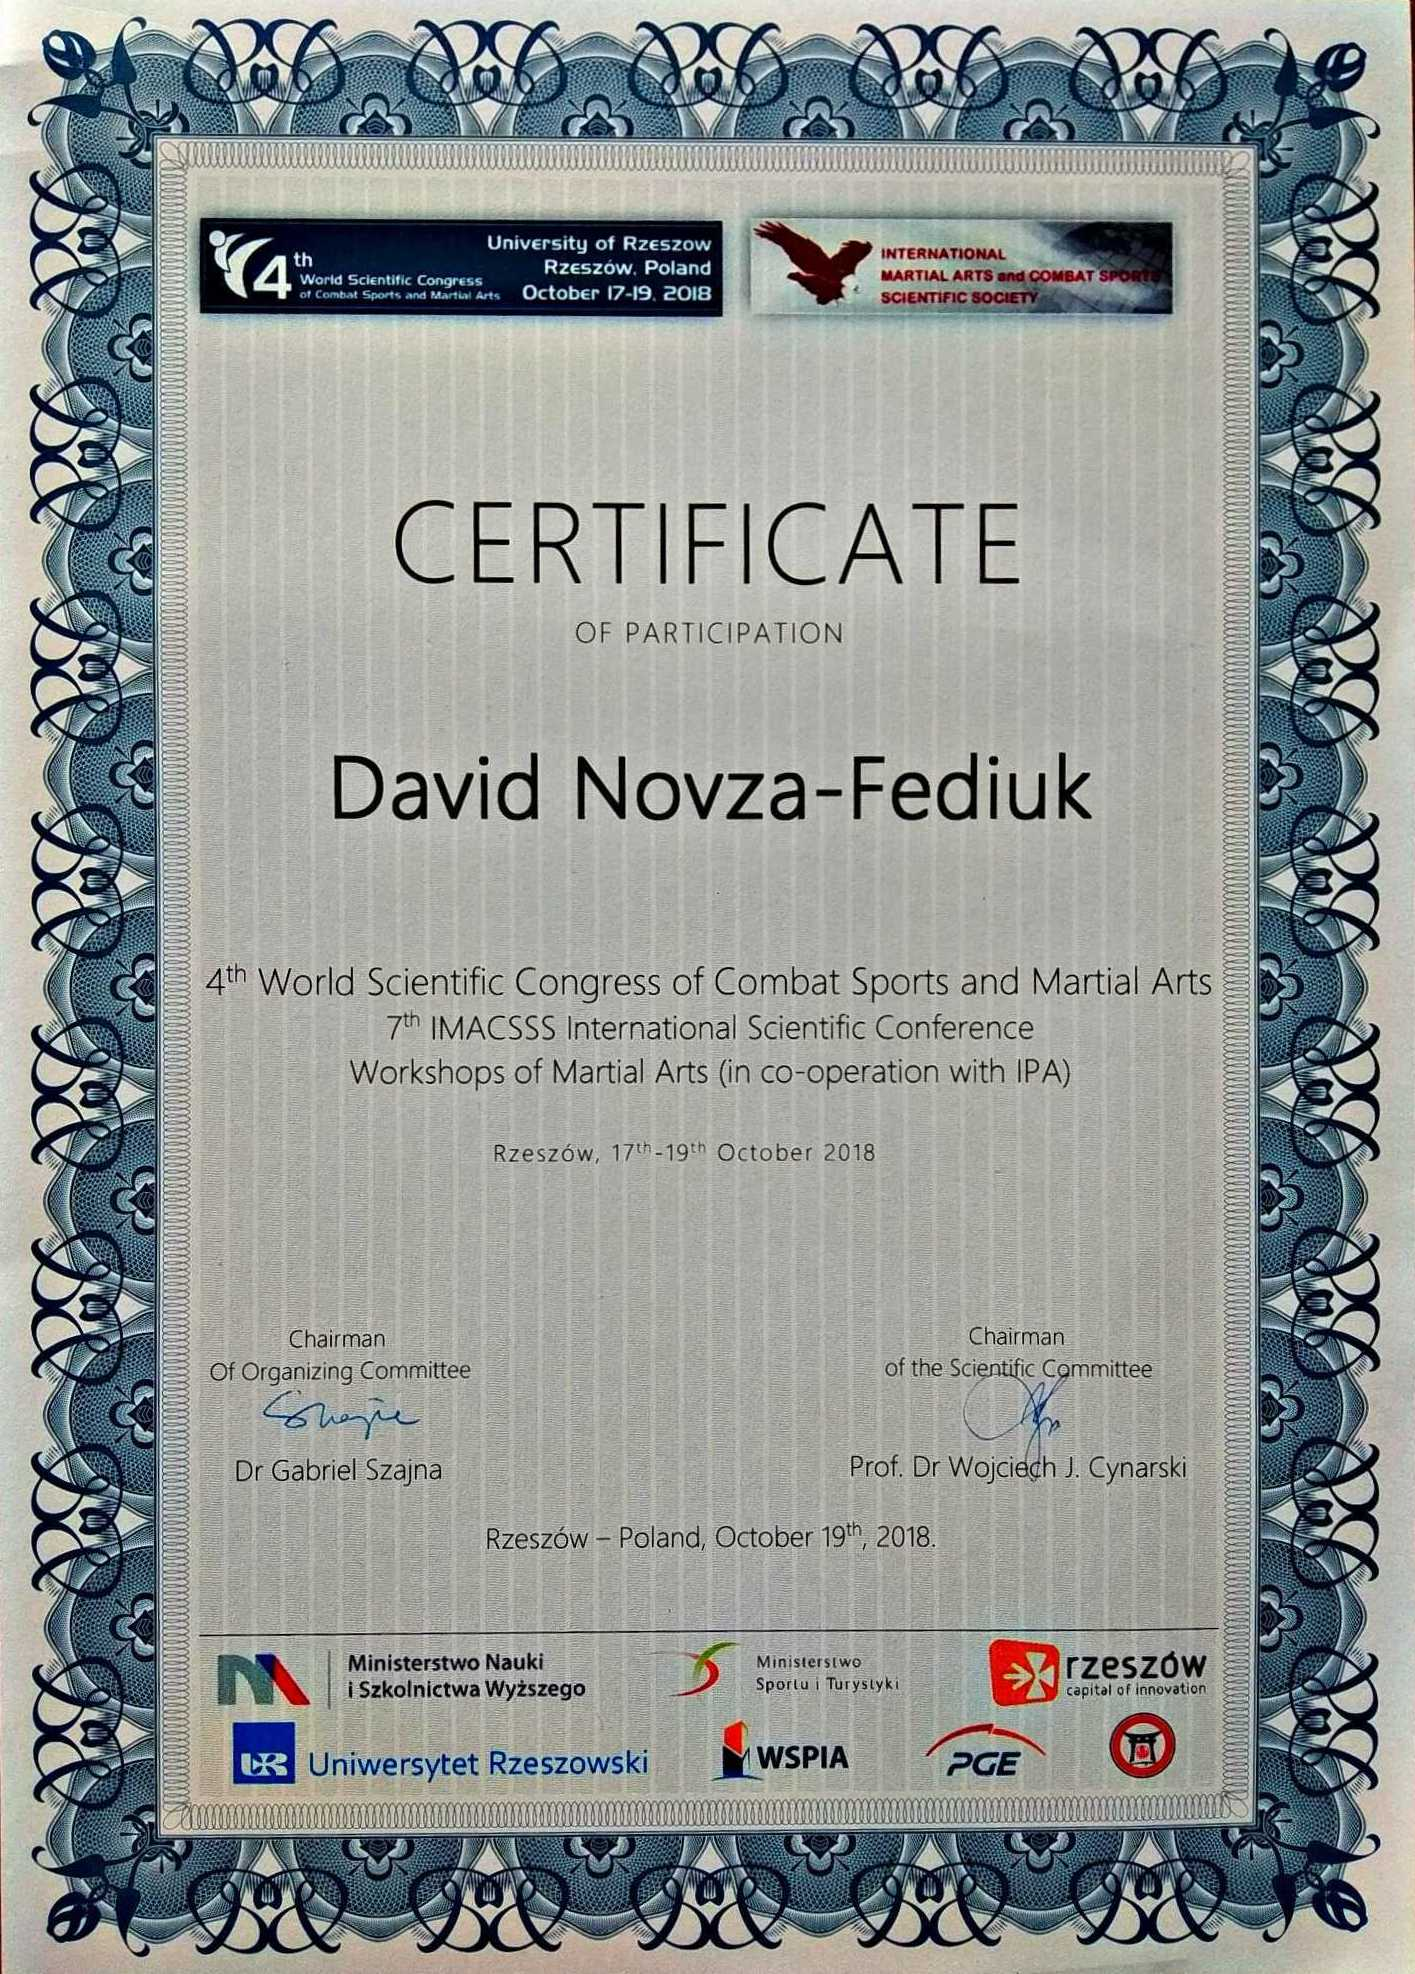 *** 4th World Scientific Congress of Combat Sports and Martial Arts IMACSSS — Workshop 2018-10-17-19 Rzeszow ***